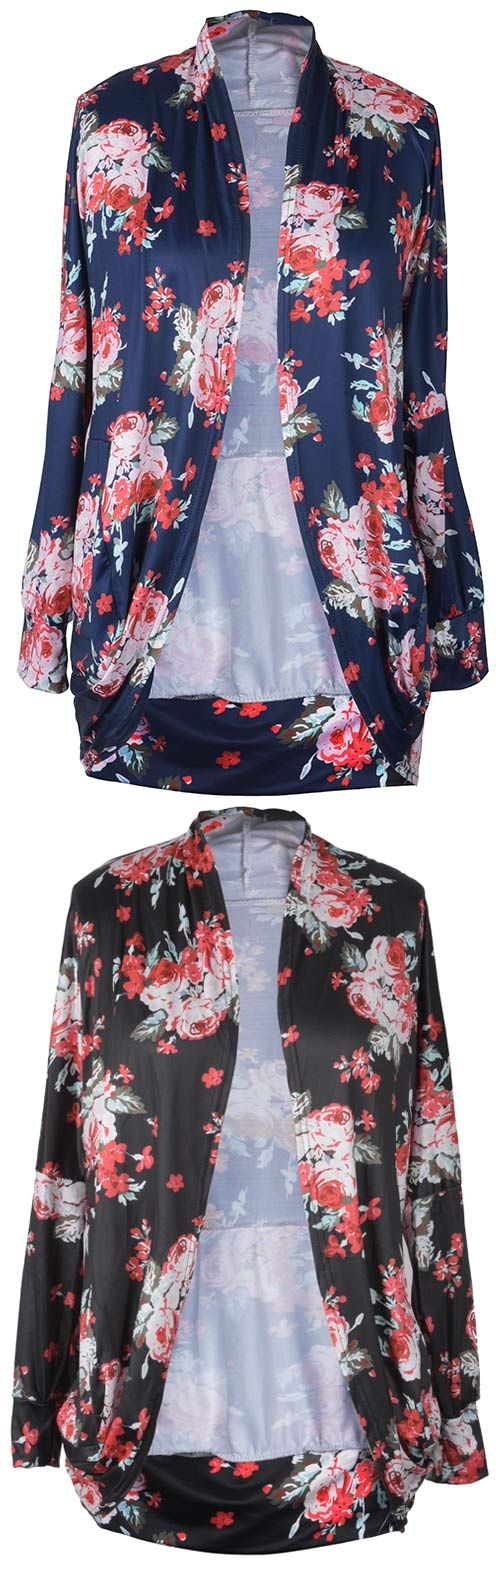 Get the floral with $17.99 Only! This wrap style cardigan is a best outfit you are searching. Pair it with a tank top! Collect it Only at Cupshe.com